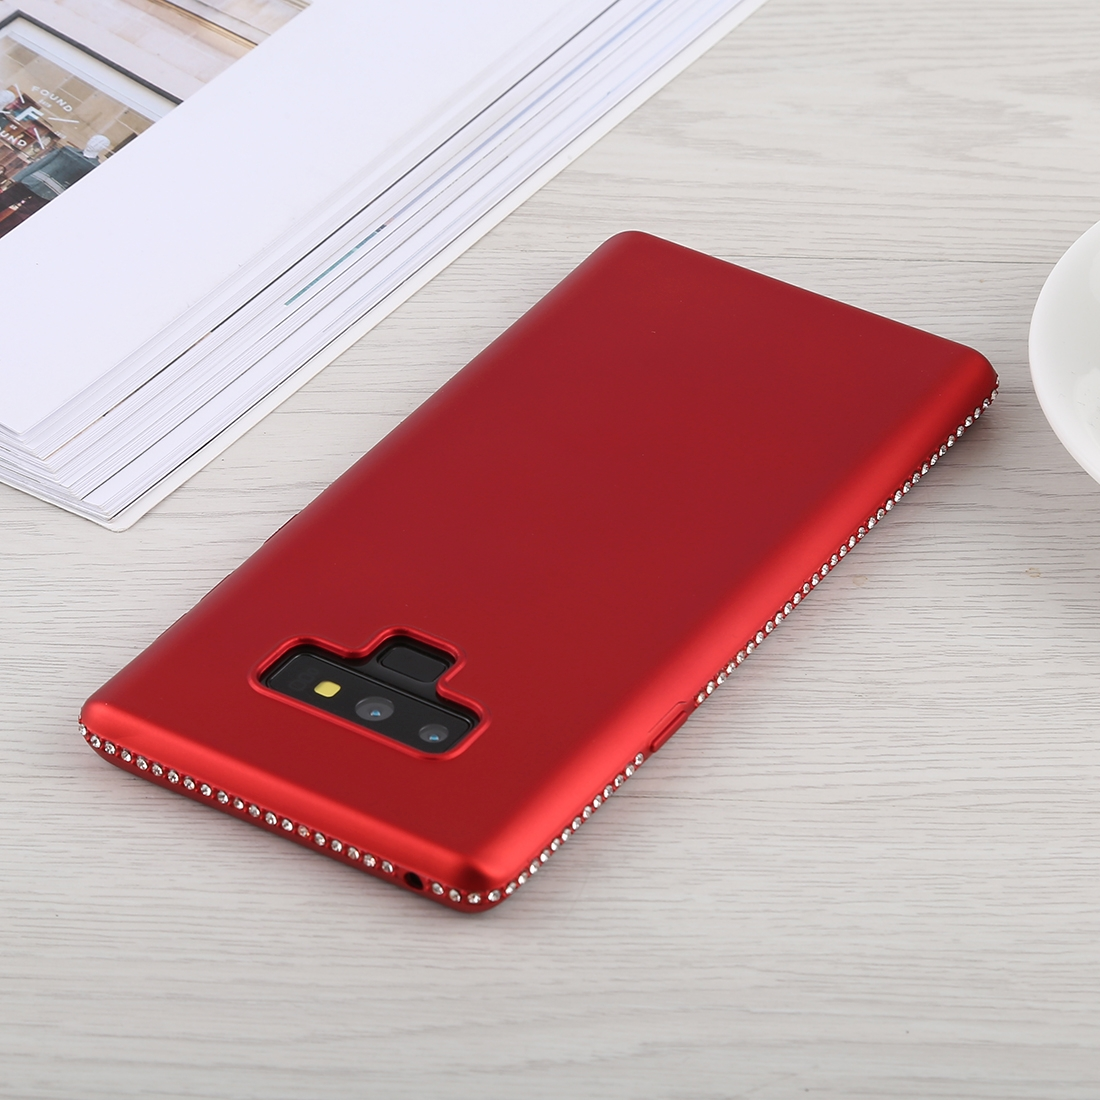 Crystal Decor Sides Smooth Surface Soft TPU Protective Back Case for Galaxy Note9 (Red)